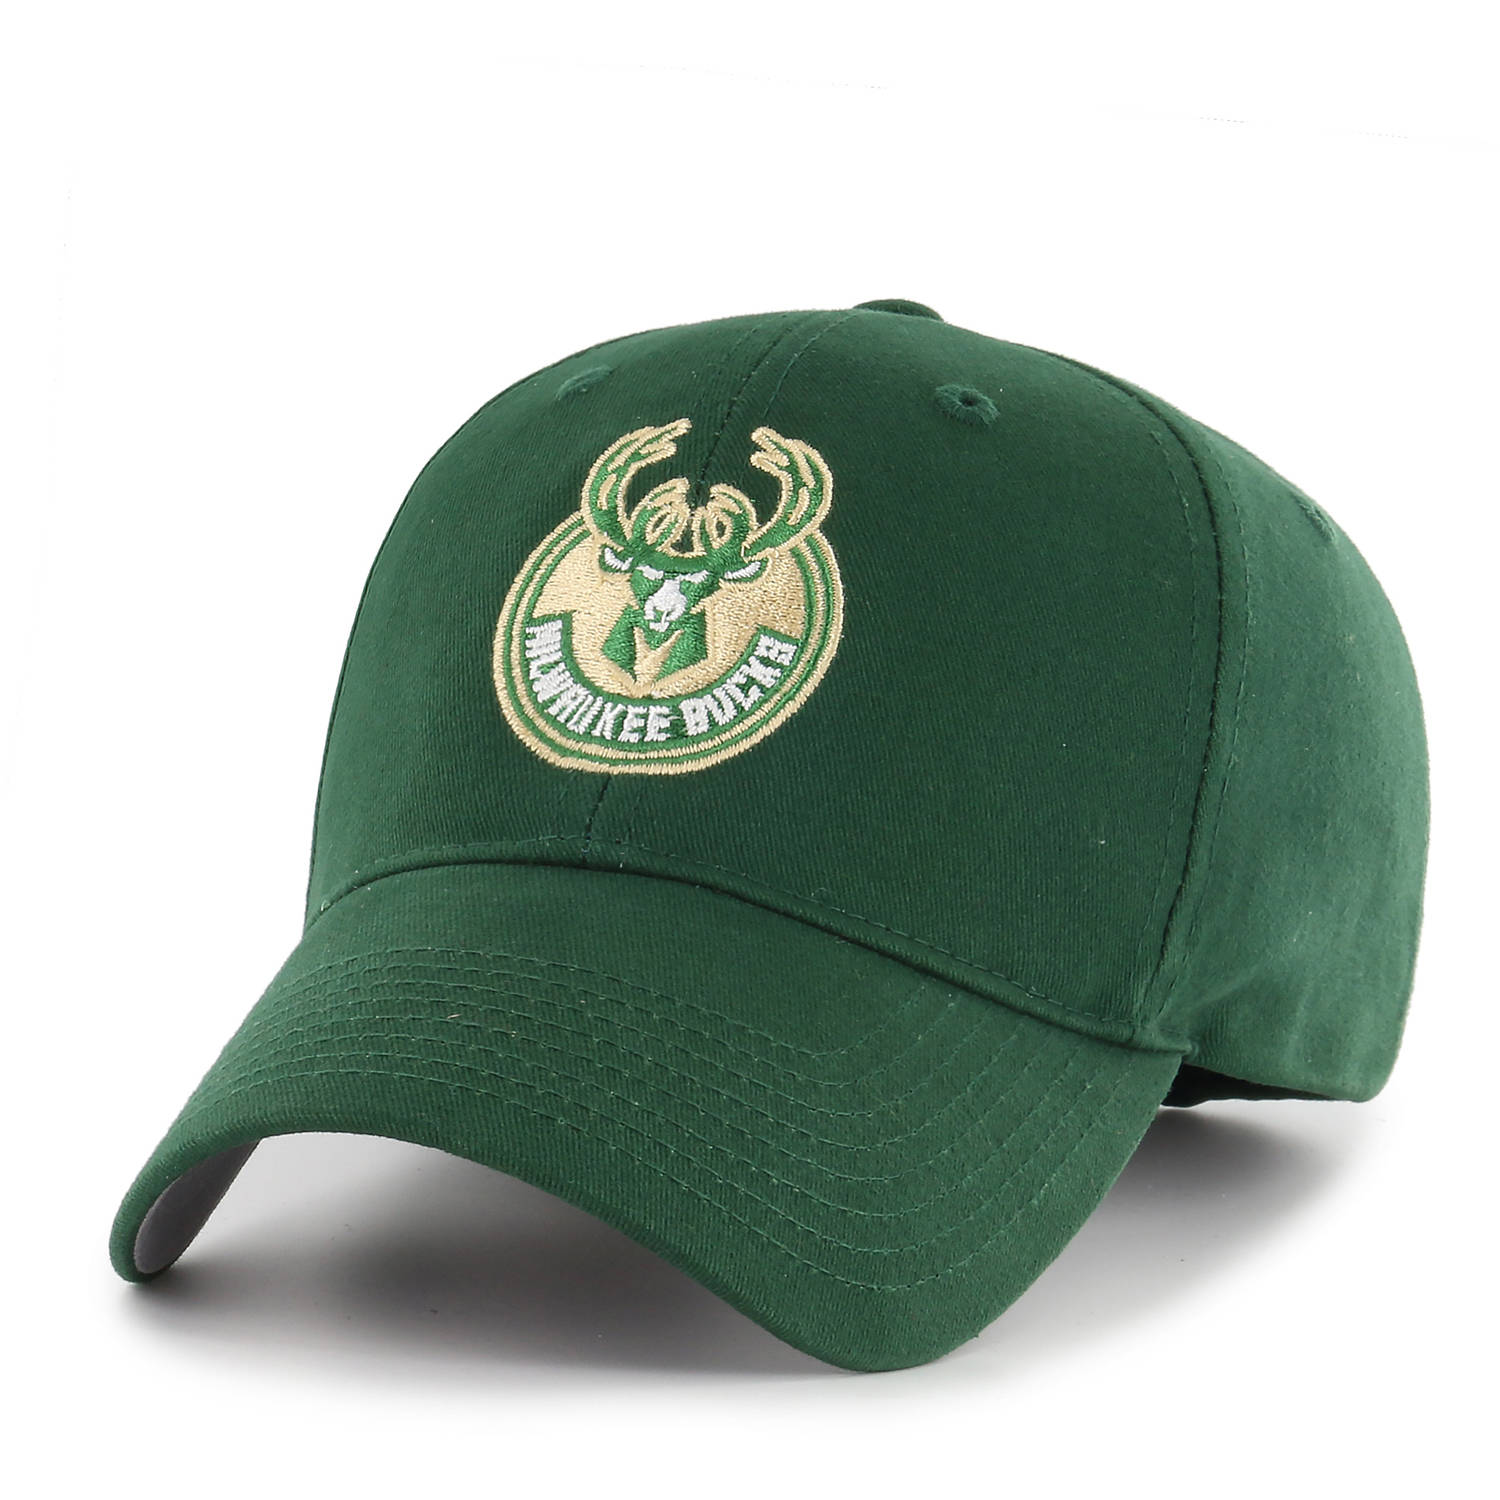 NBA Milwaukee Bucks Basic Cap/Hat - Fan Favorite